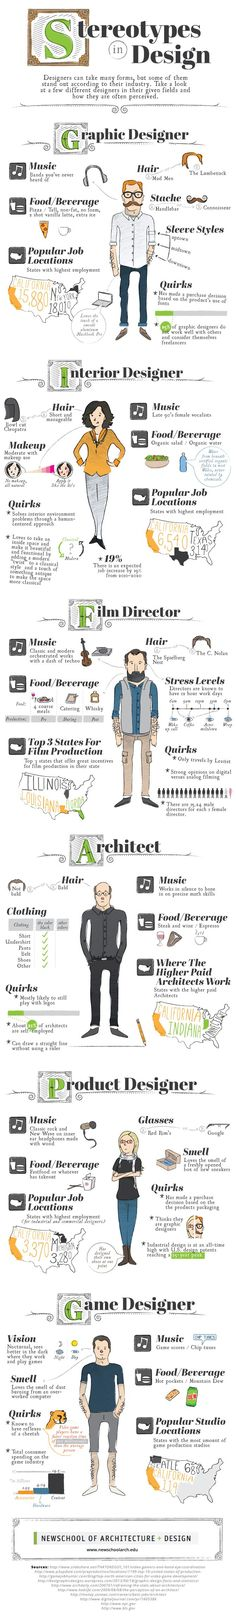 #Infographic : Stereotypes in Design | NewSchool of Architecture and #Design